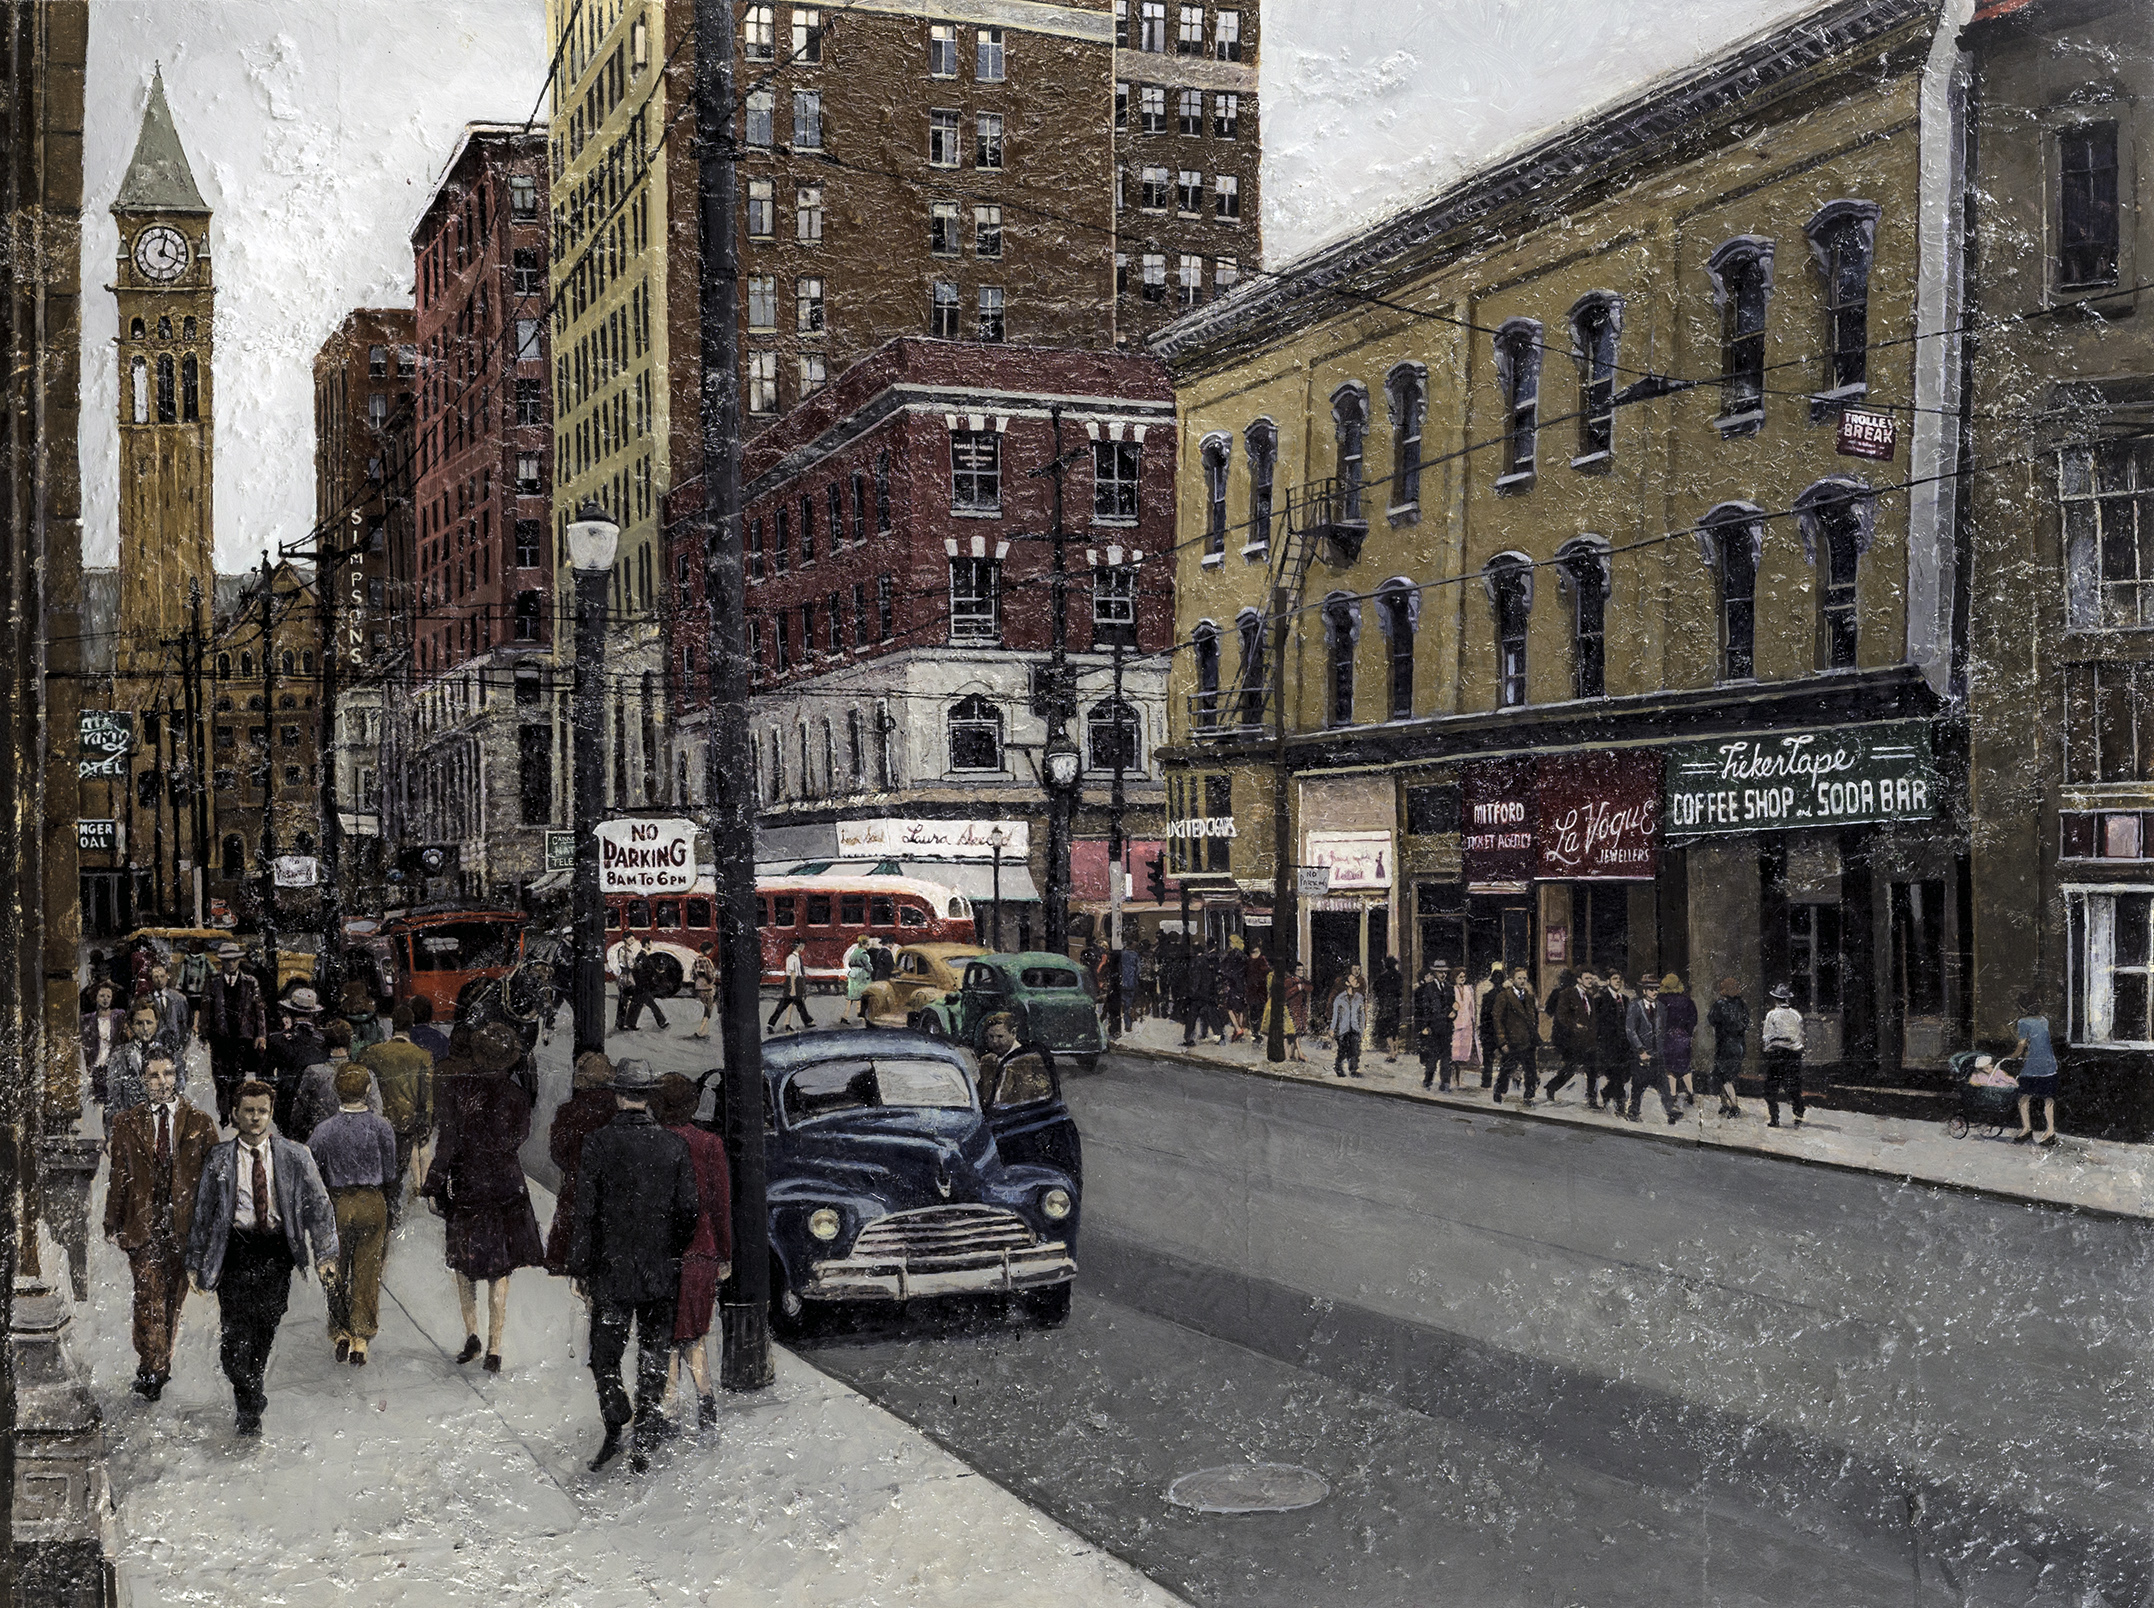 Bay and Adelaide, 194-